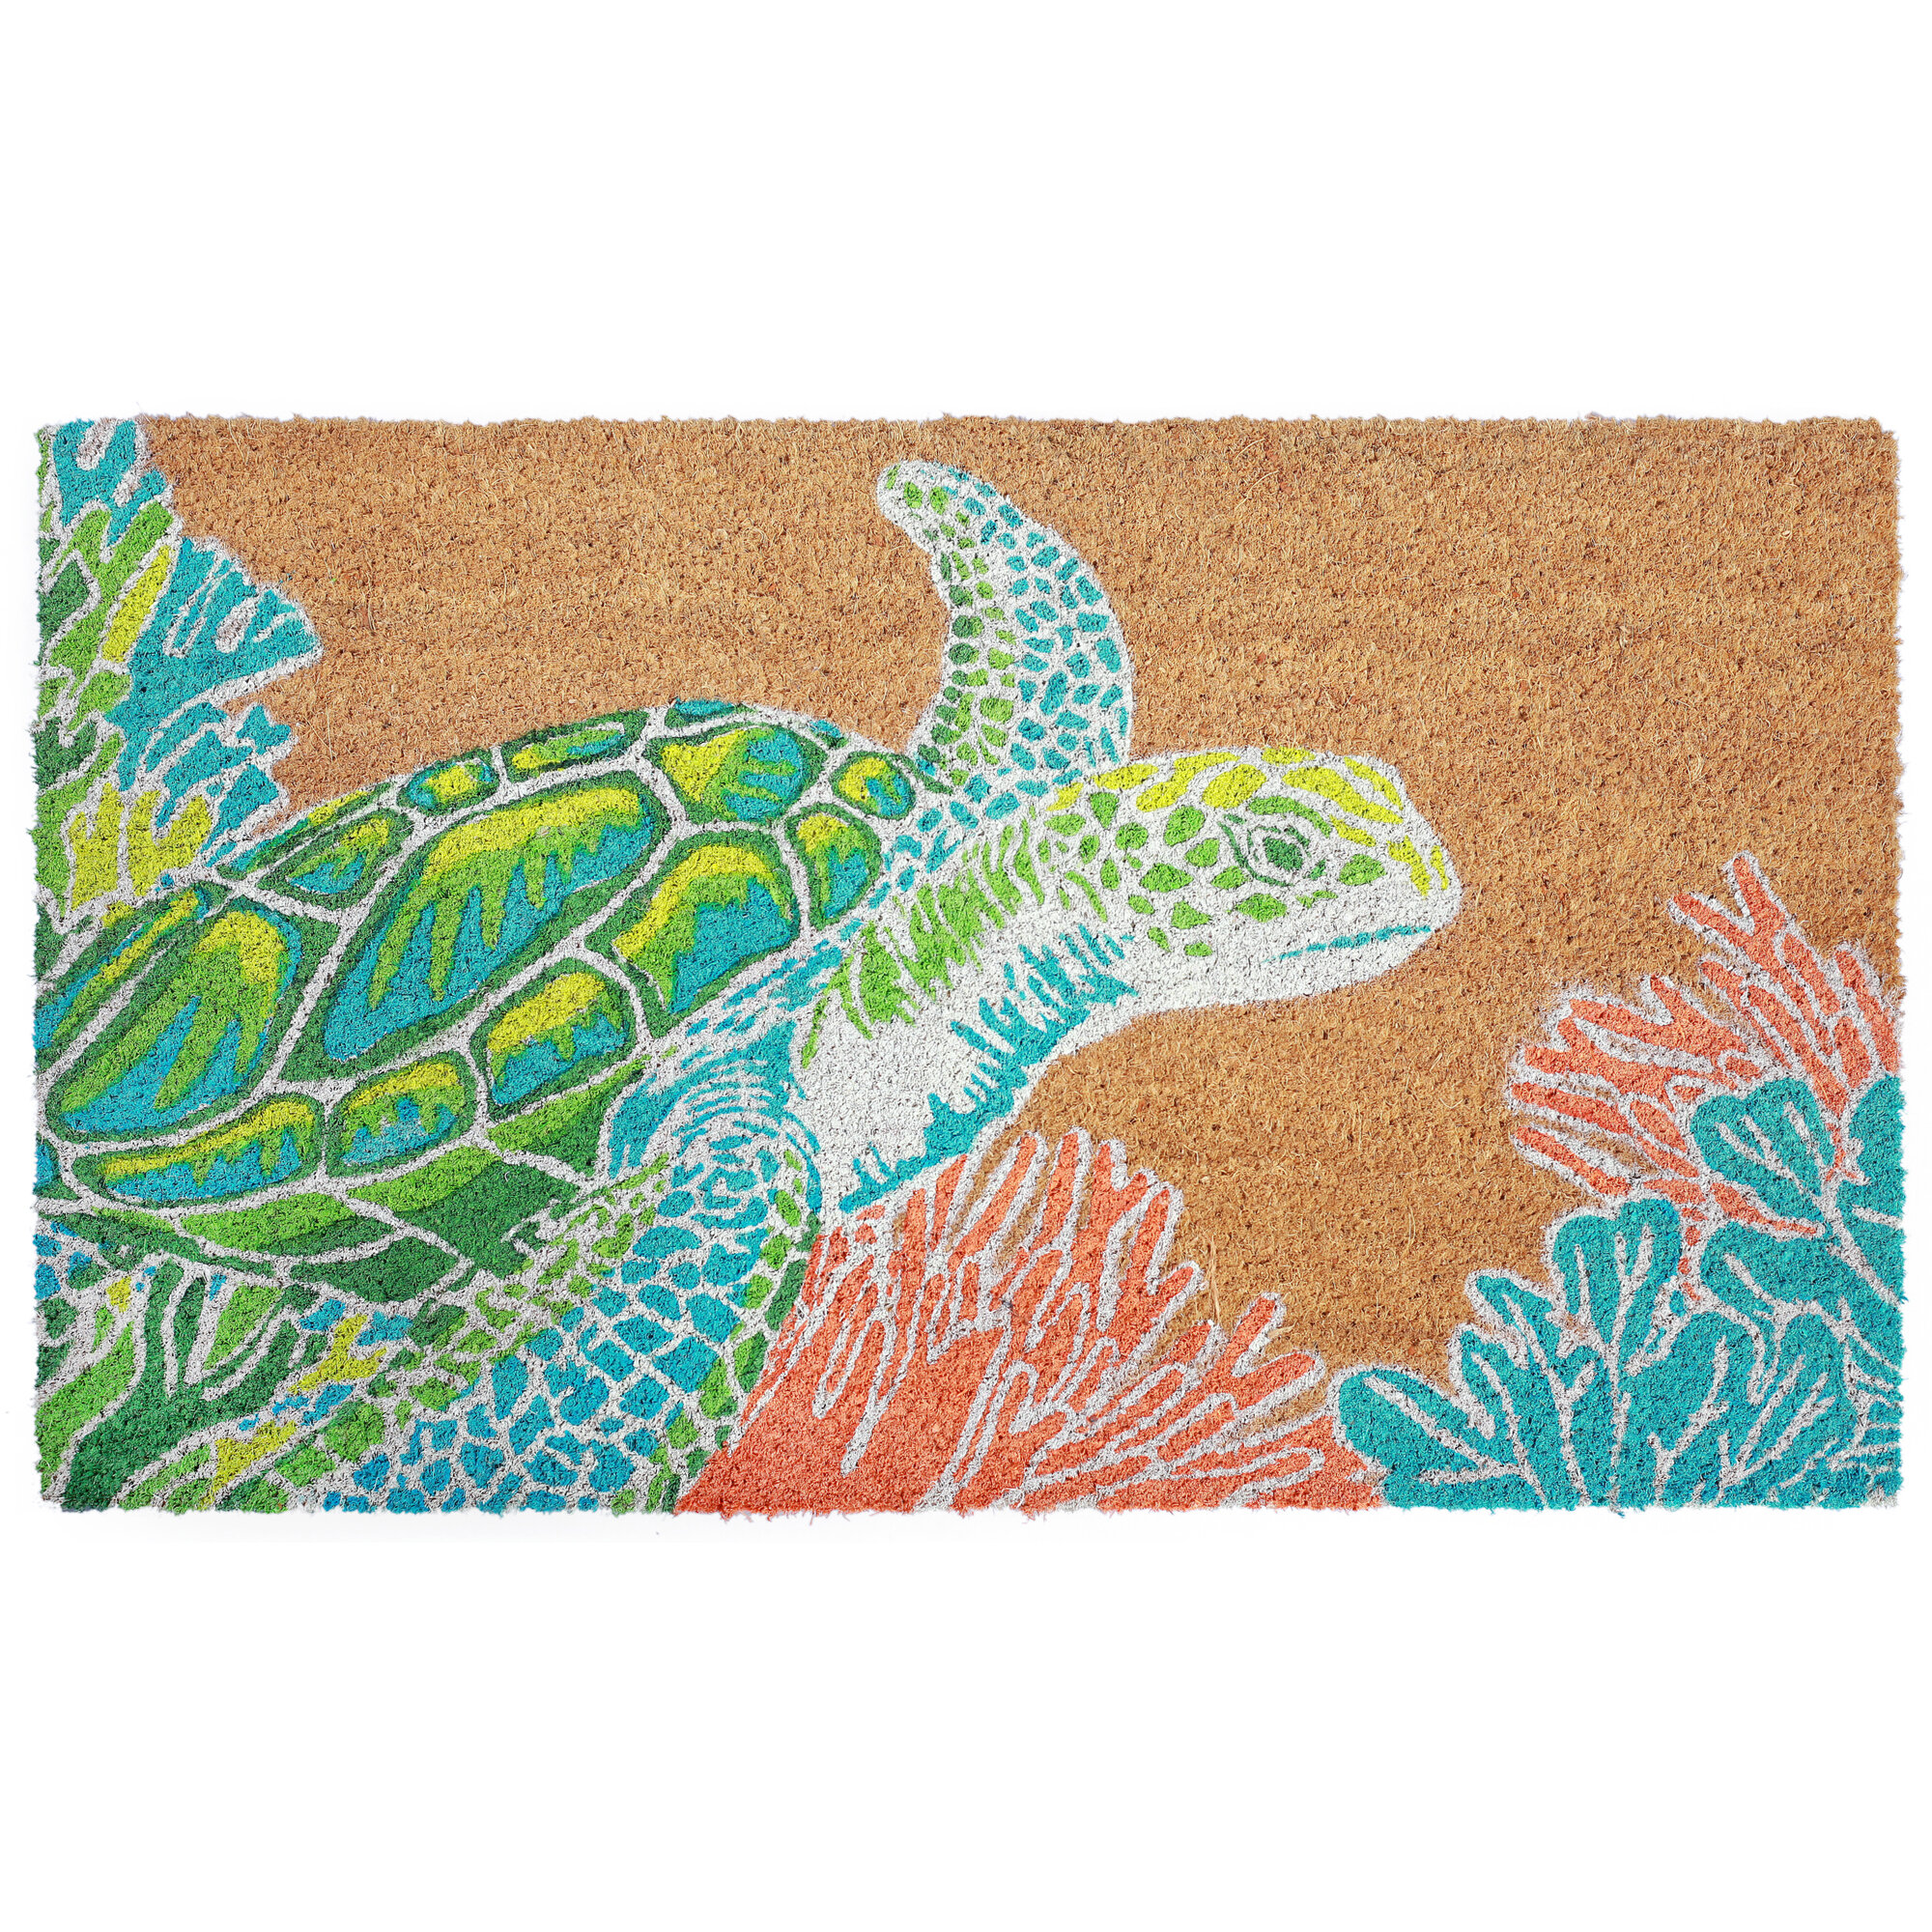 443ac0ed8 Highland Dunes Blais Sea Turtle Door mat   Reviews